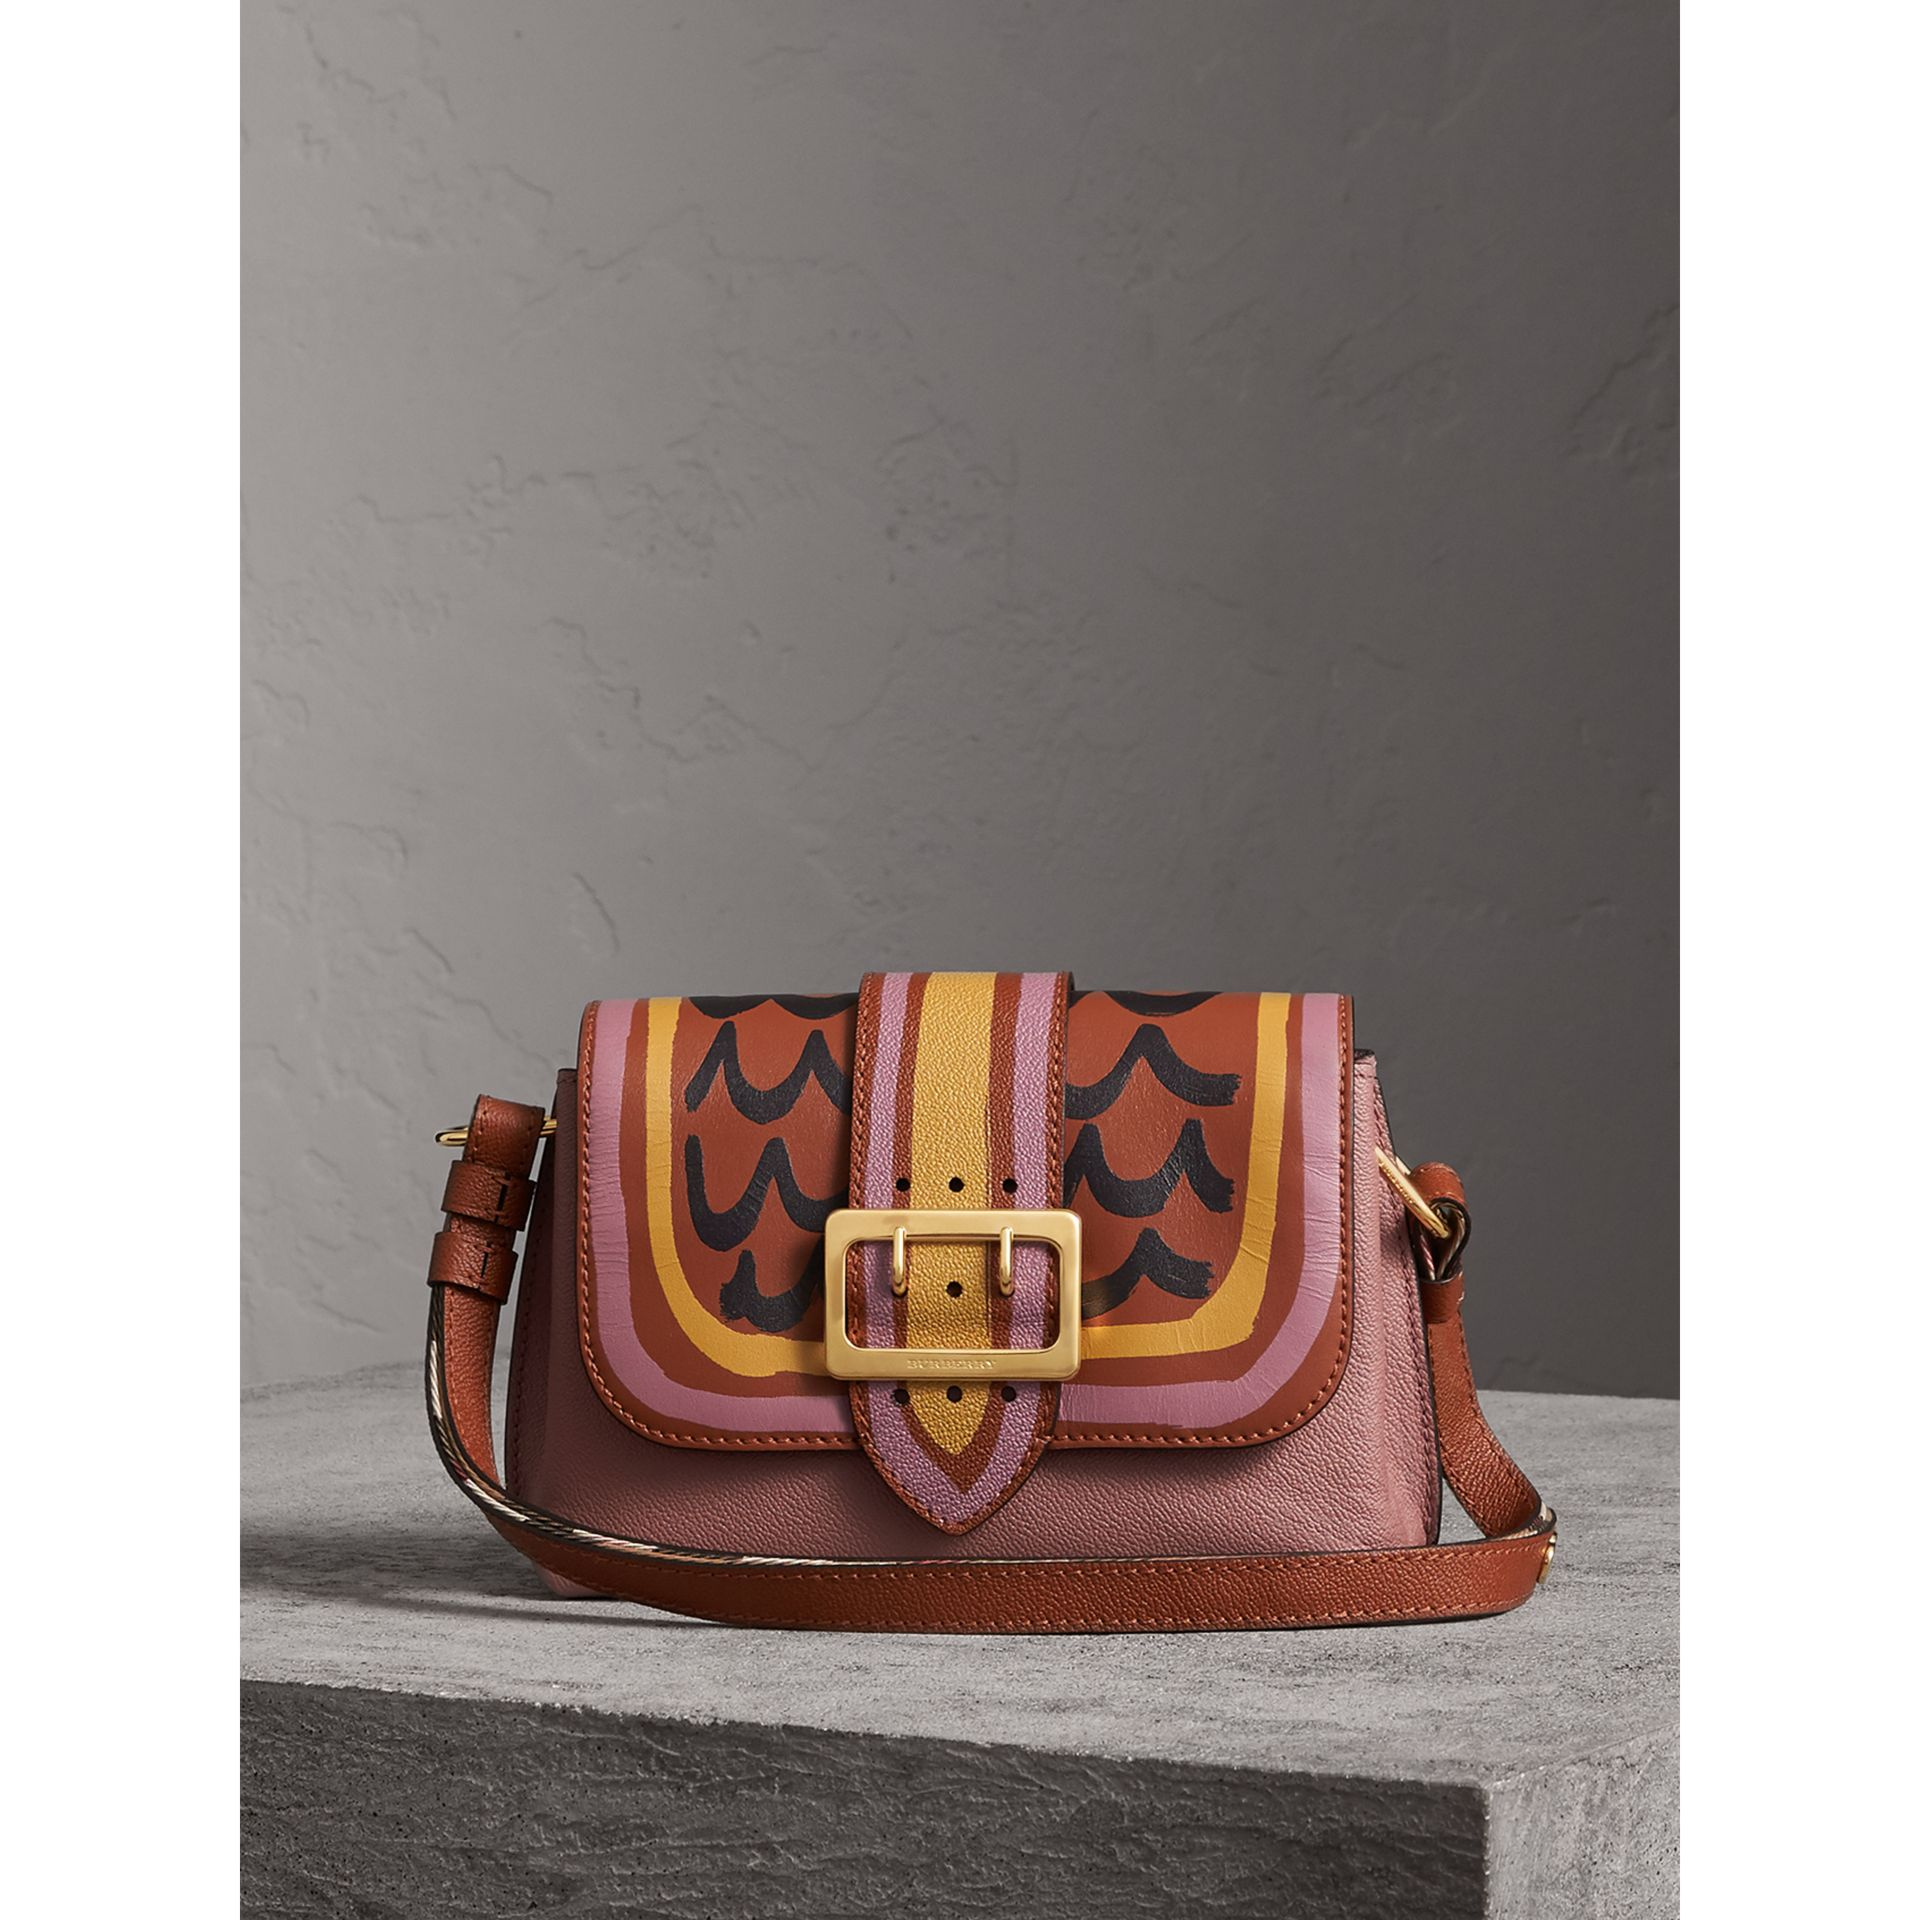 2610be544cbd Burberry The Buckle Crossbody Bag In Trompe L Oeil Leather In Dusty ...